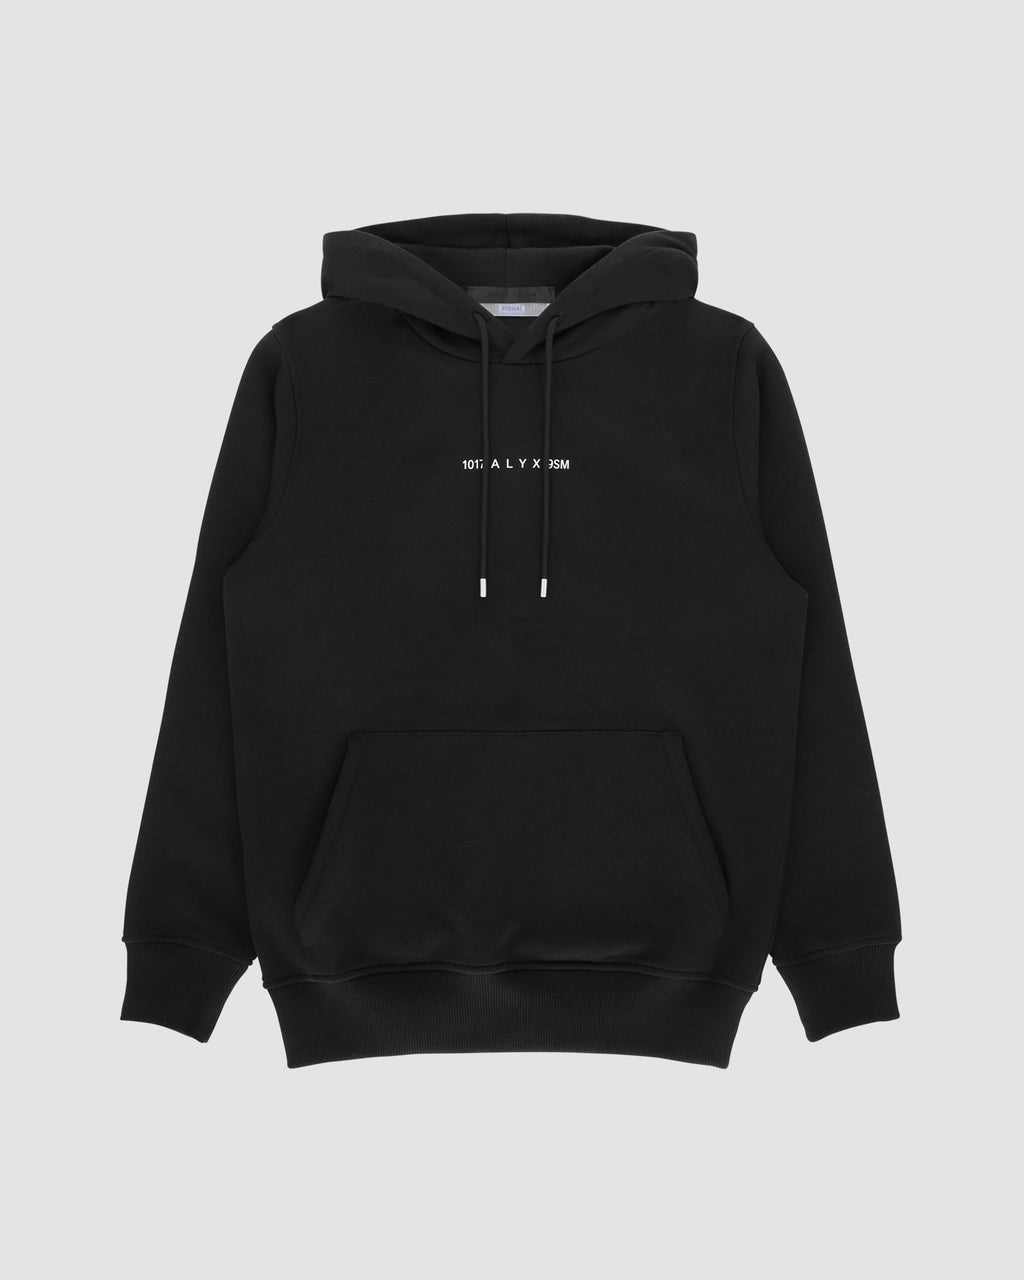 1017 ALYX 9SM | LOGO HOODED SWEATSHIRT | Sweatshirt | Black, F19, Visual